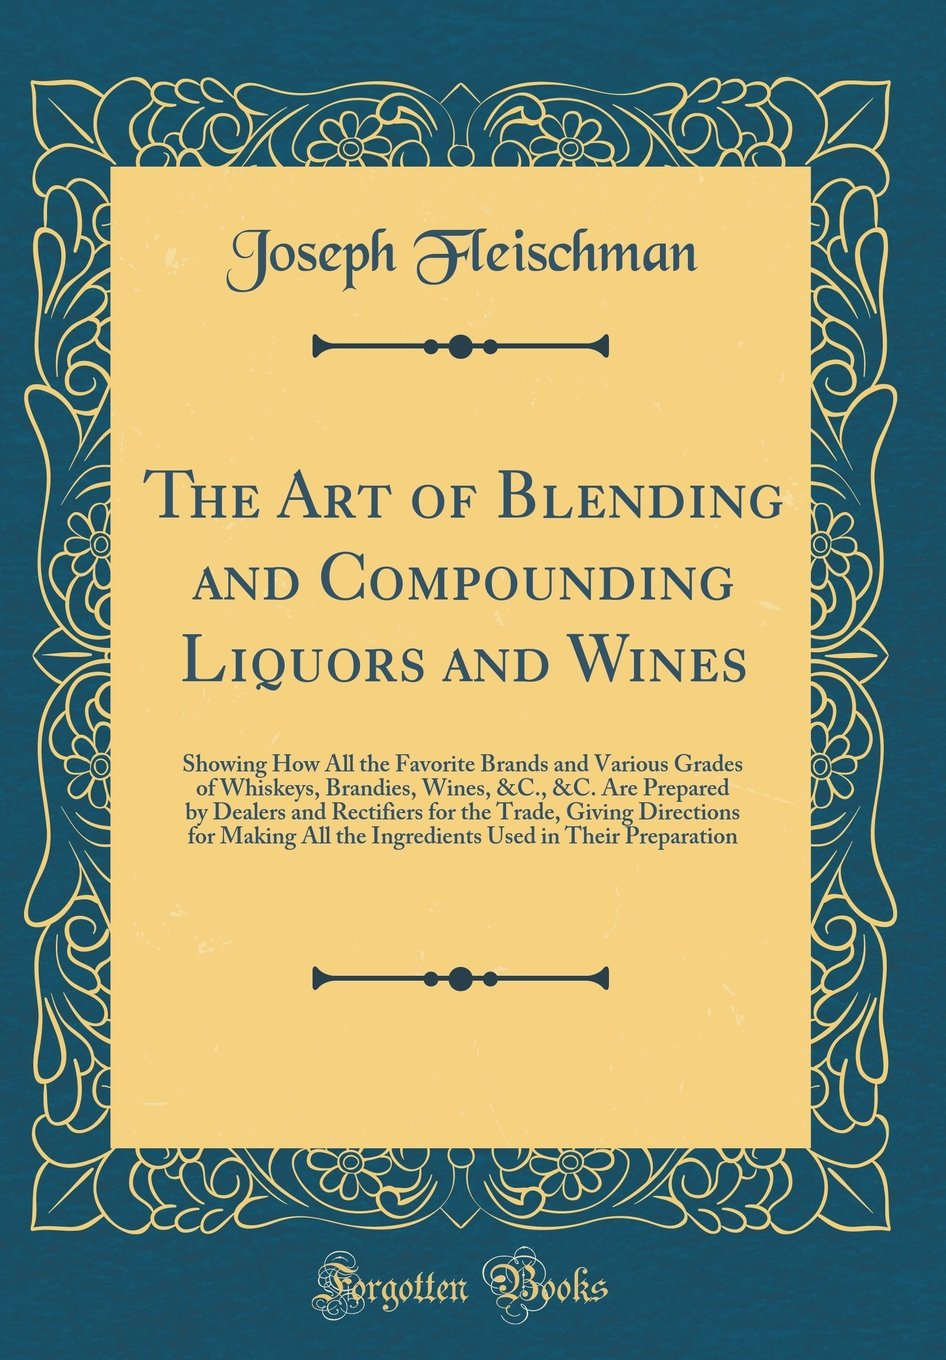 Download The Art of Blending and Compounding Liquors and Wines: Showing How All the Favorite Brands and Various Grades of Whiskeys, Brandies, Wines, &C., &C. ... Directions for Making All the Ingredients Use pdf epub